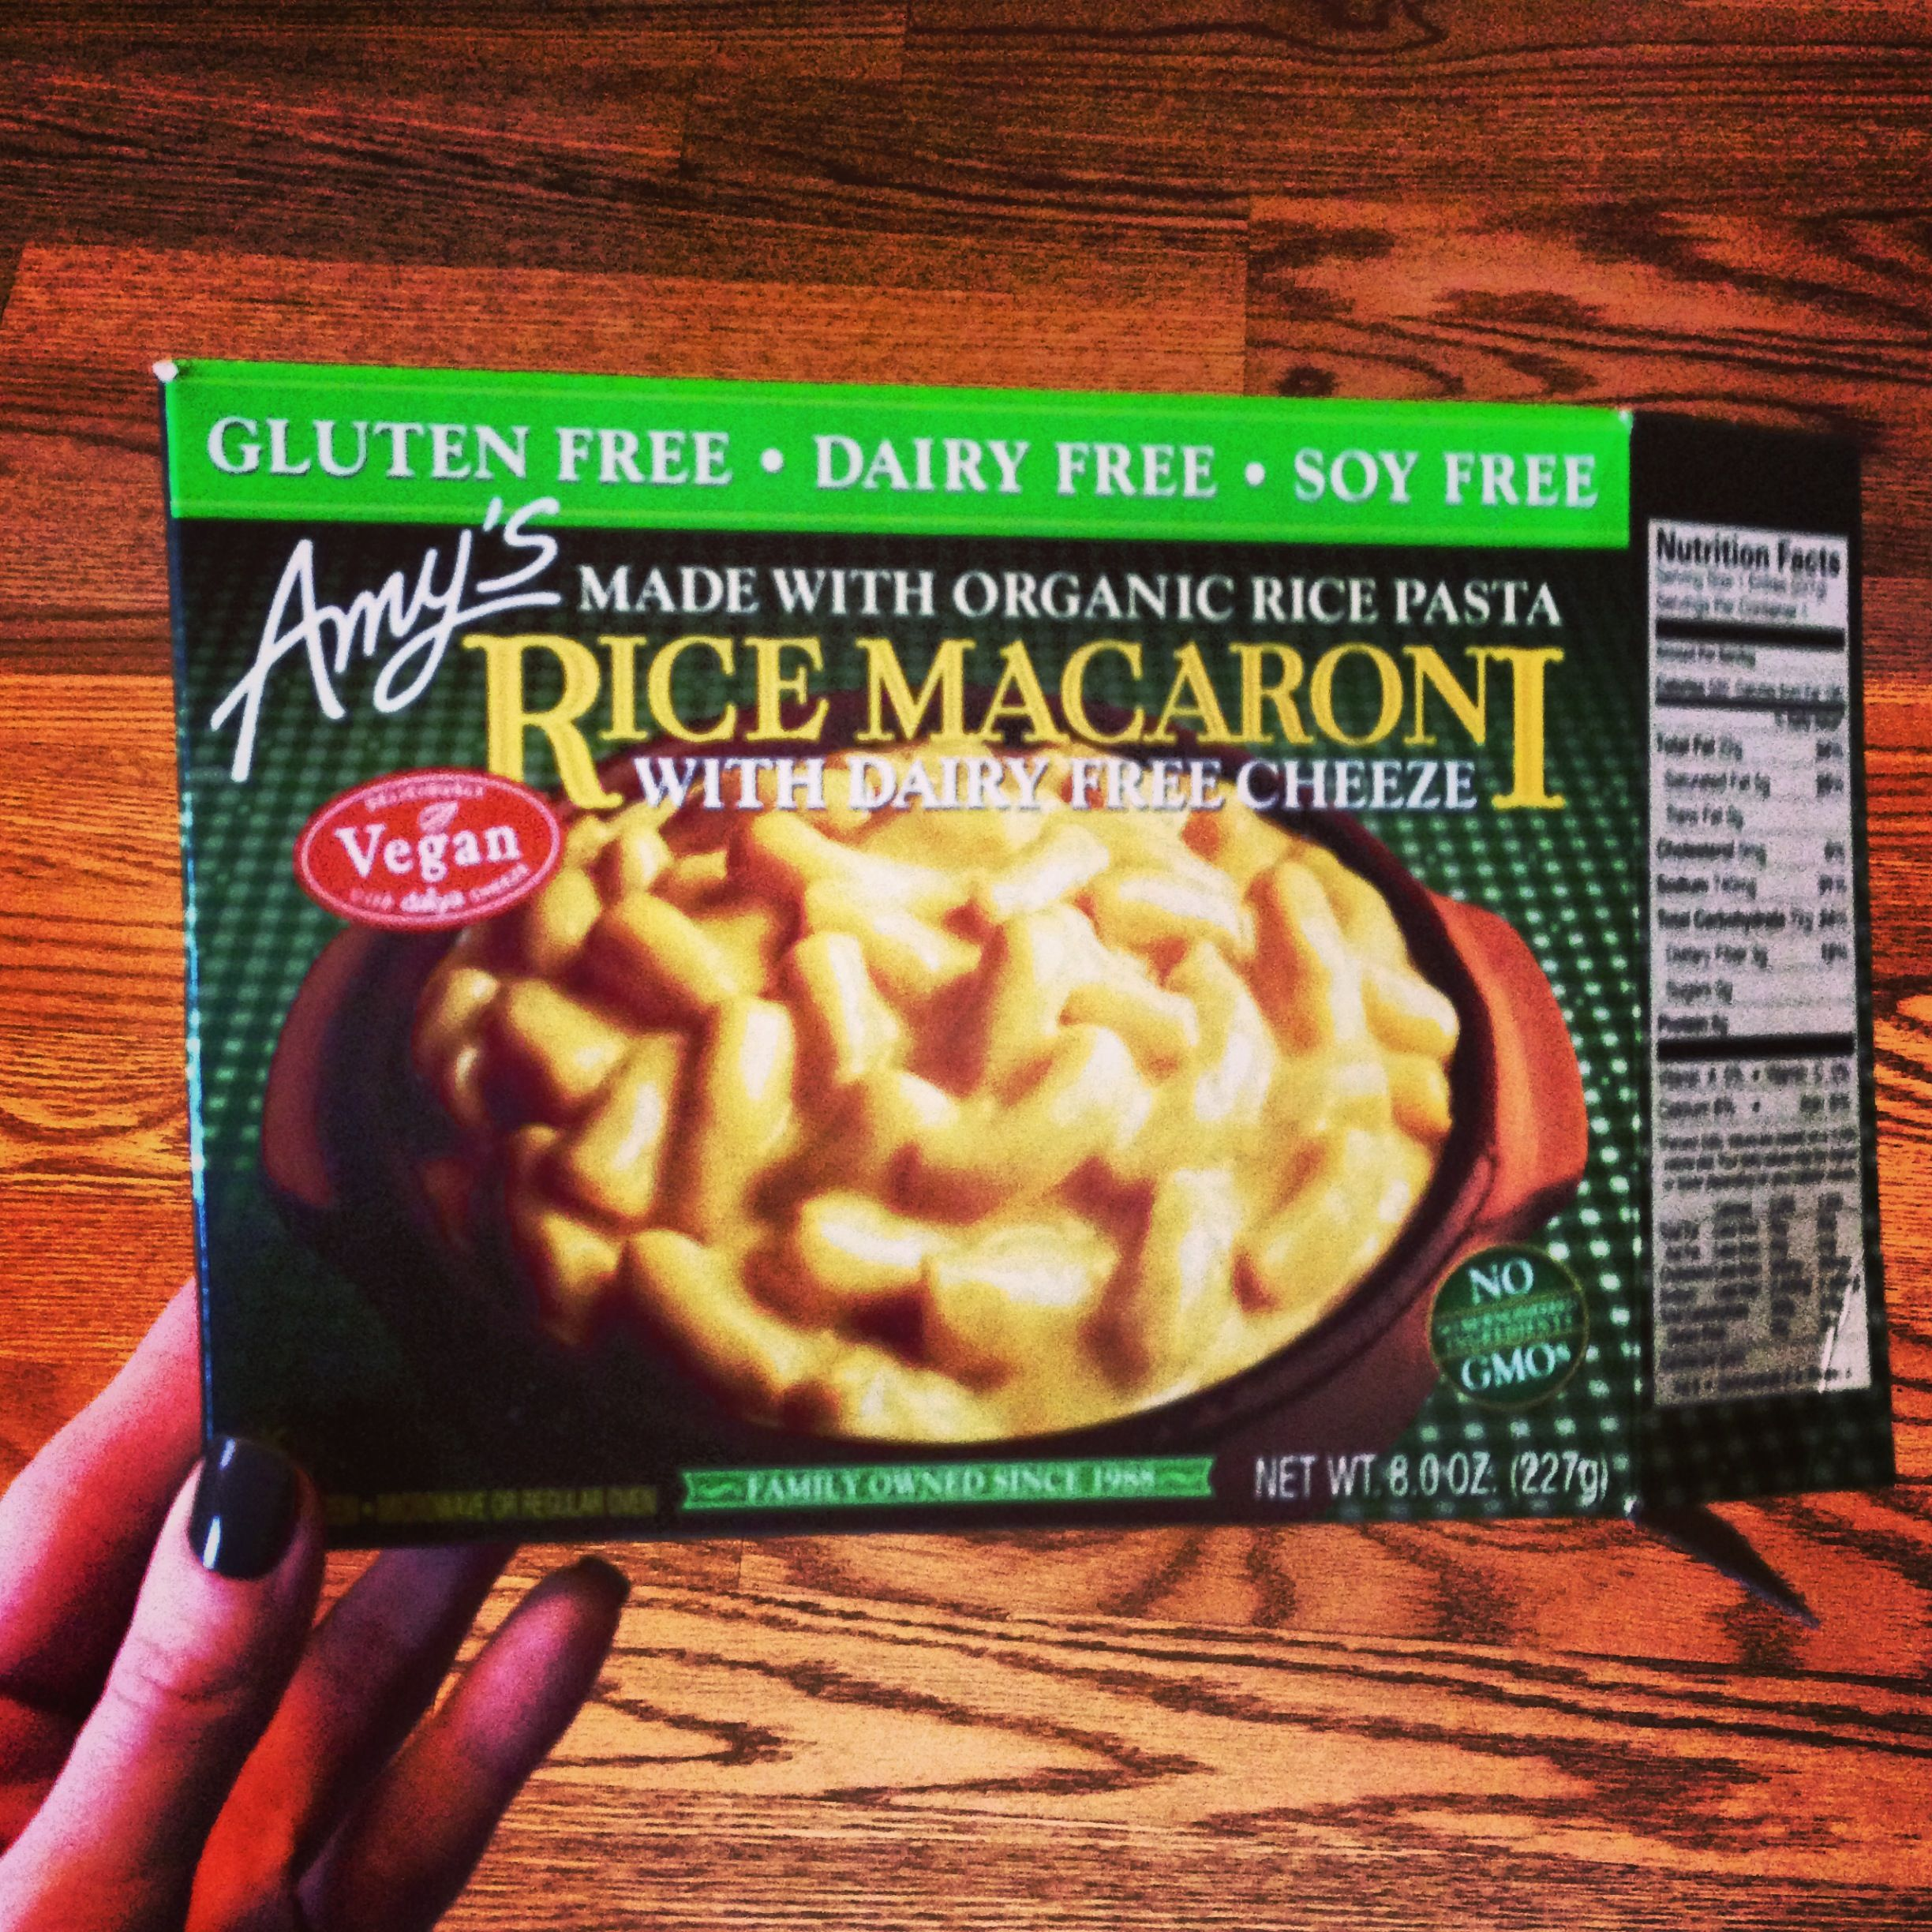 Amy S Organics Vegan And Gluten Free Mac N Cheese Delicious Vegan Food Brands Gluten Free Dairy Free Gluten Free Quinoa Recipes